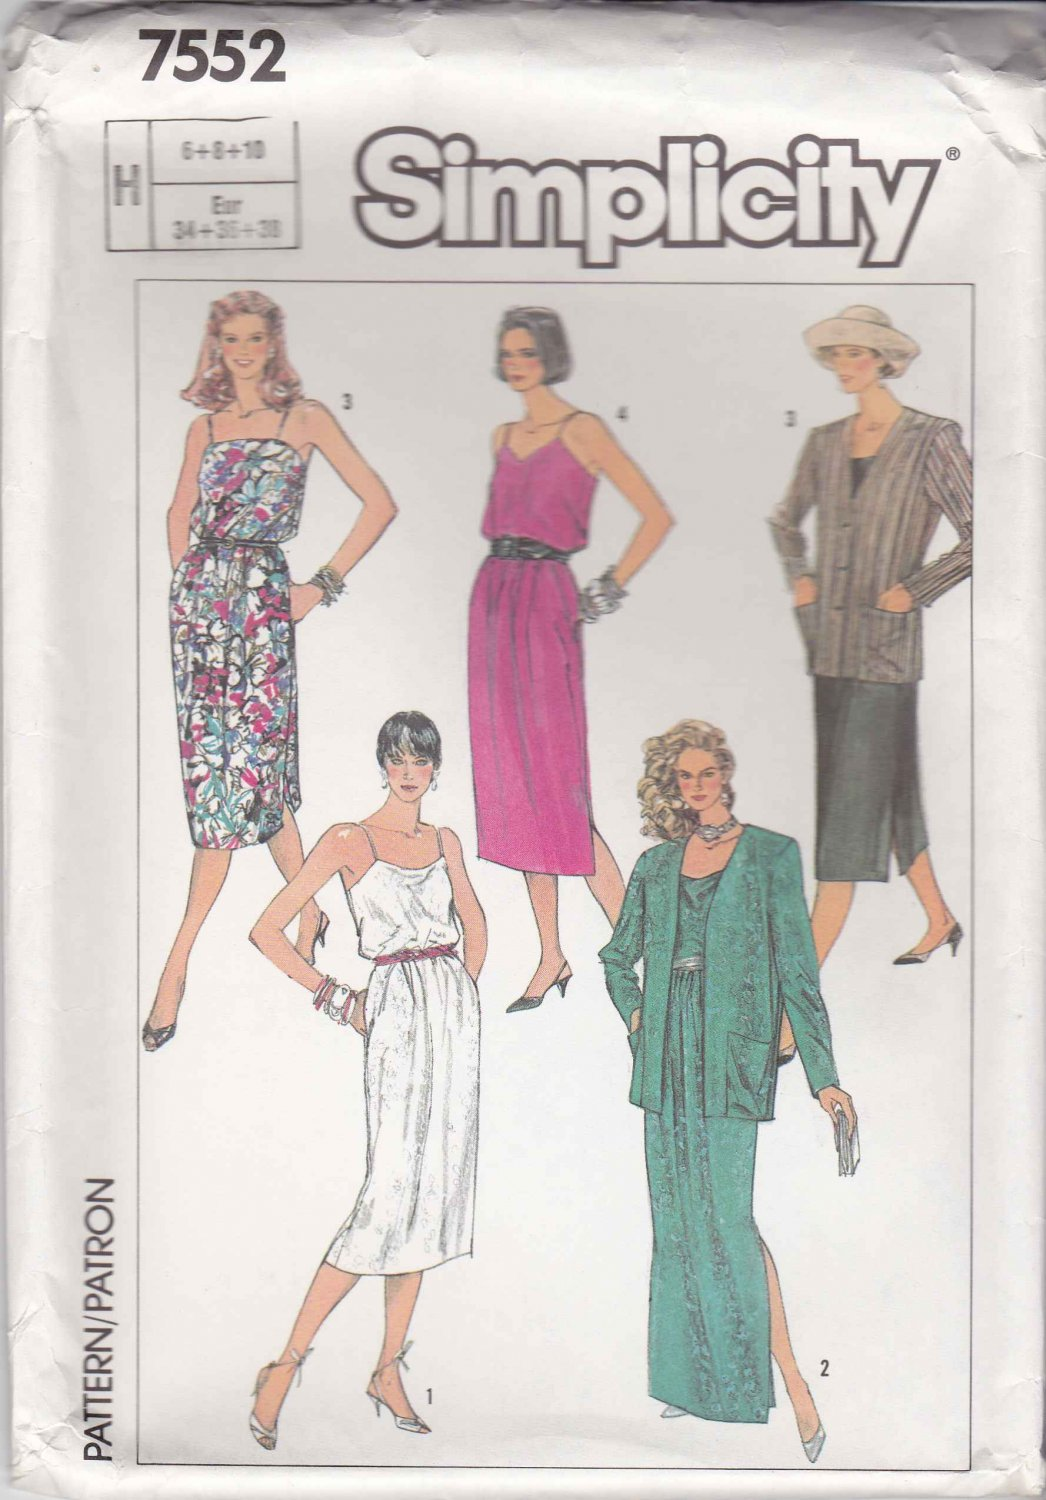 Simplicity Sewing Pattern 7552 Misses Size 6-10 Easy Summer Sundress Sleeveless Dress Jacket